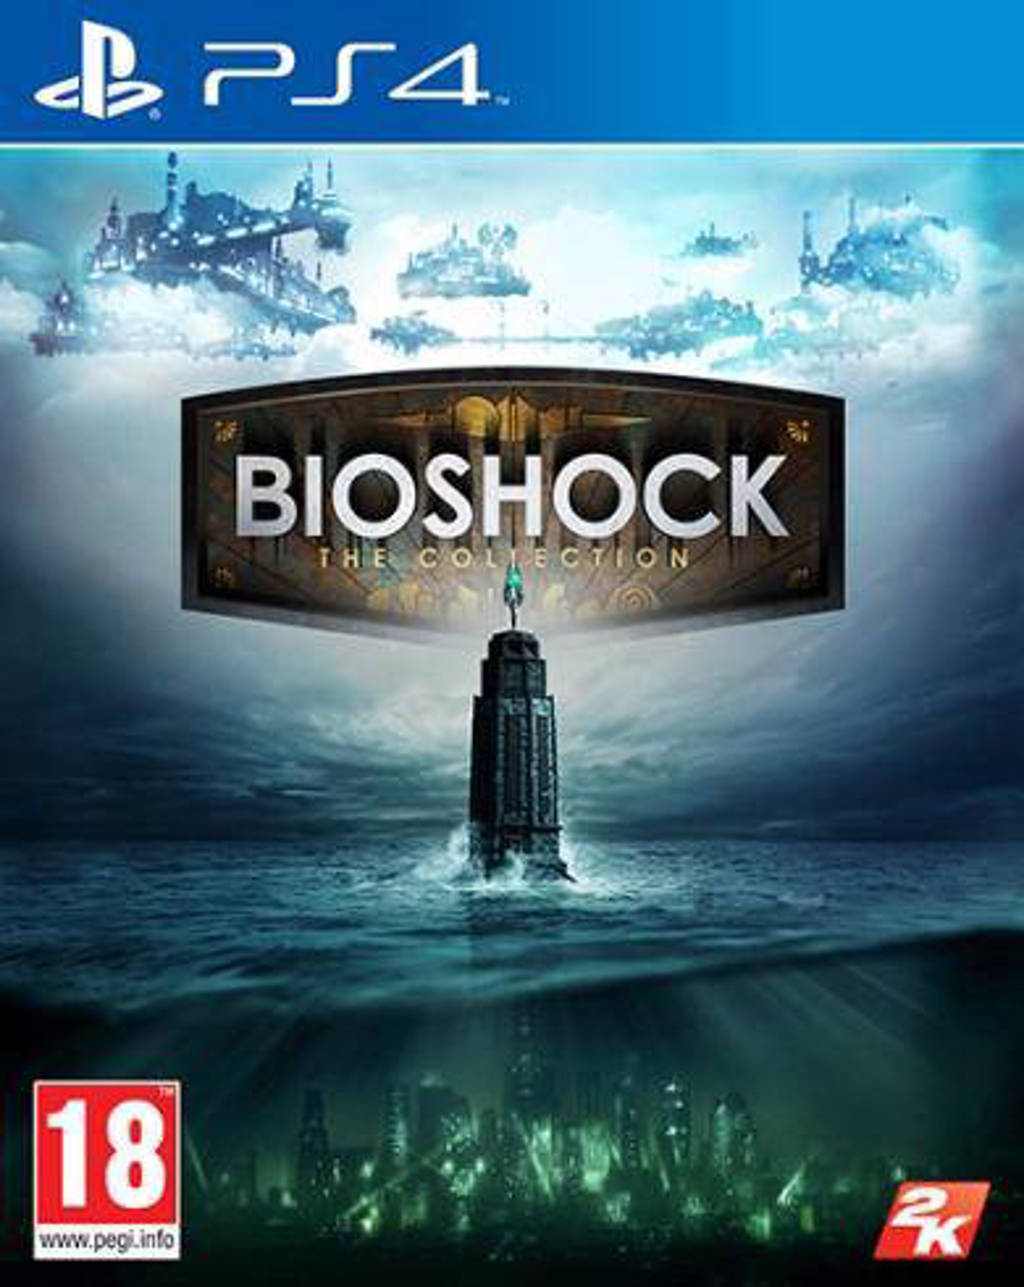 Bioshock - The collection (PlayStation 4)